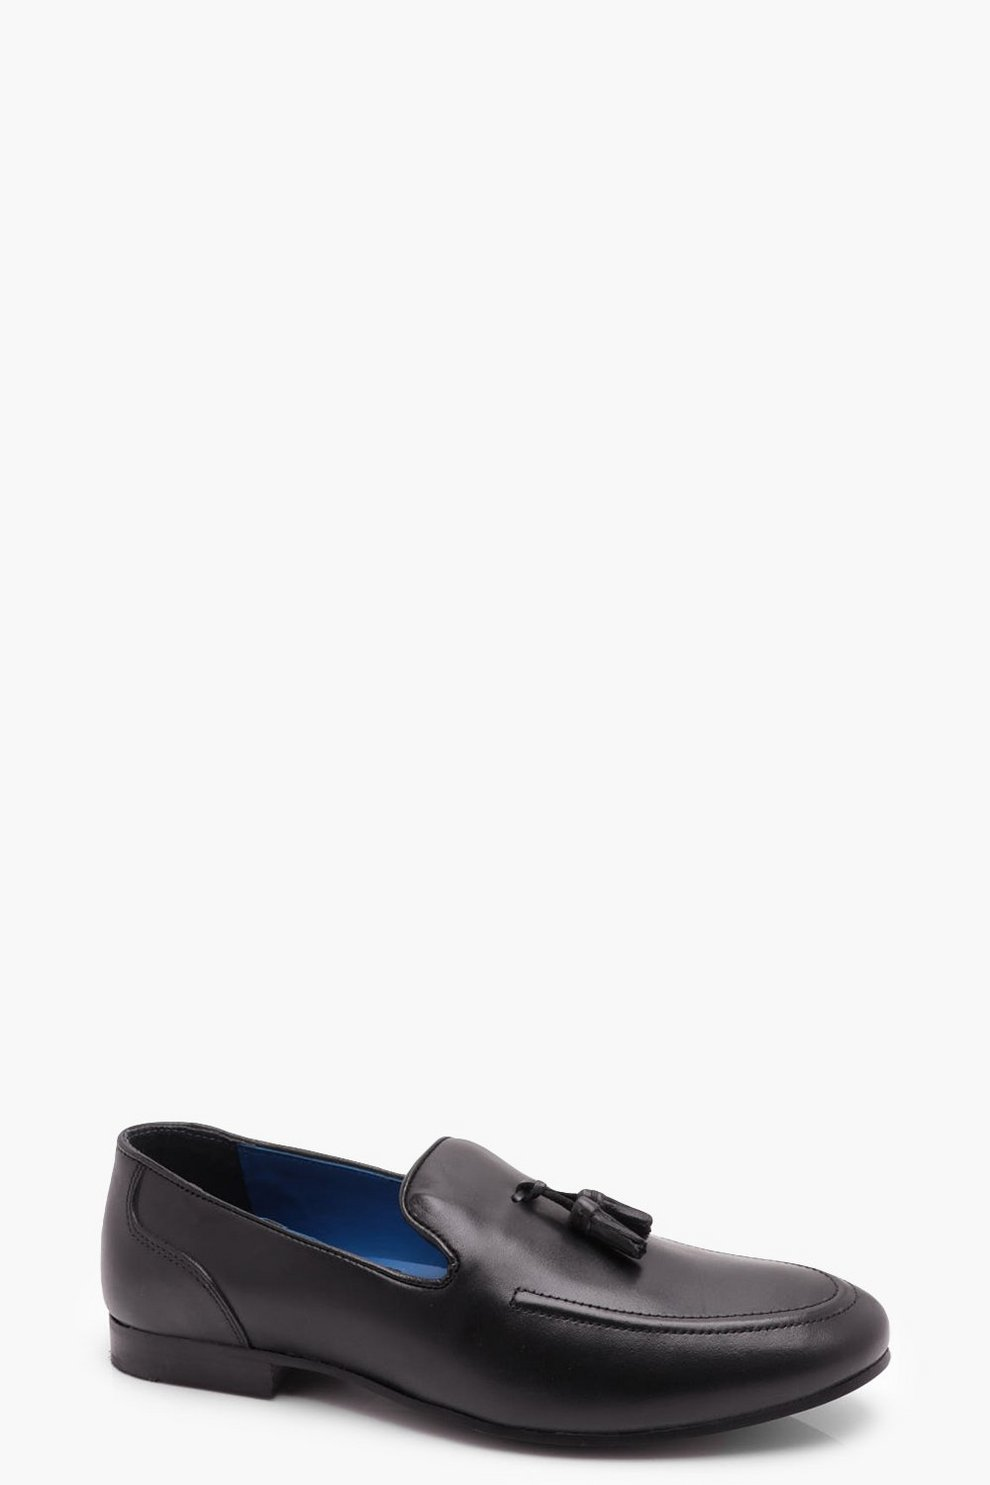 boohoo Black Leather Tassel Loafer fashion shoes clearance  hot sale online